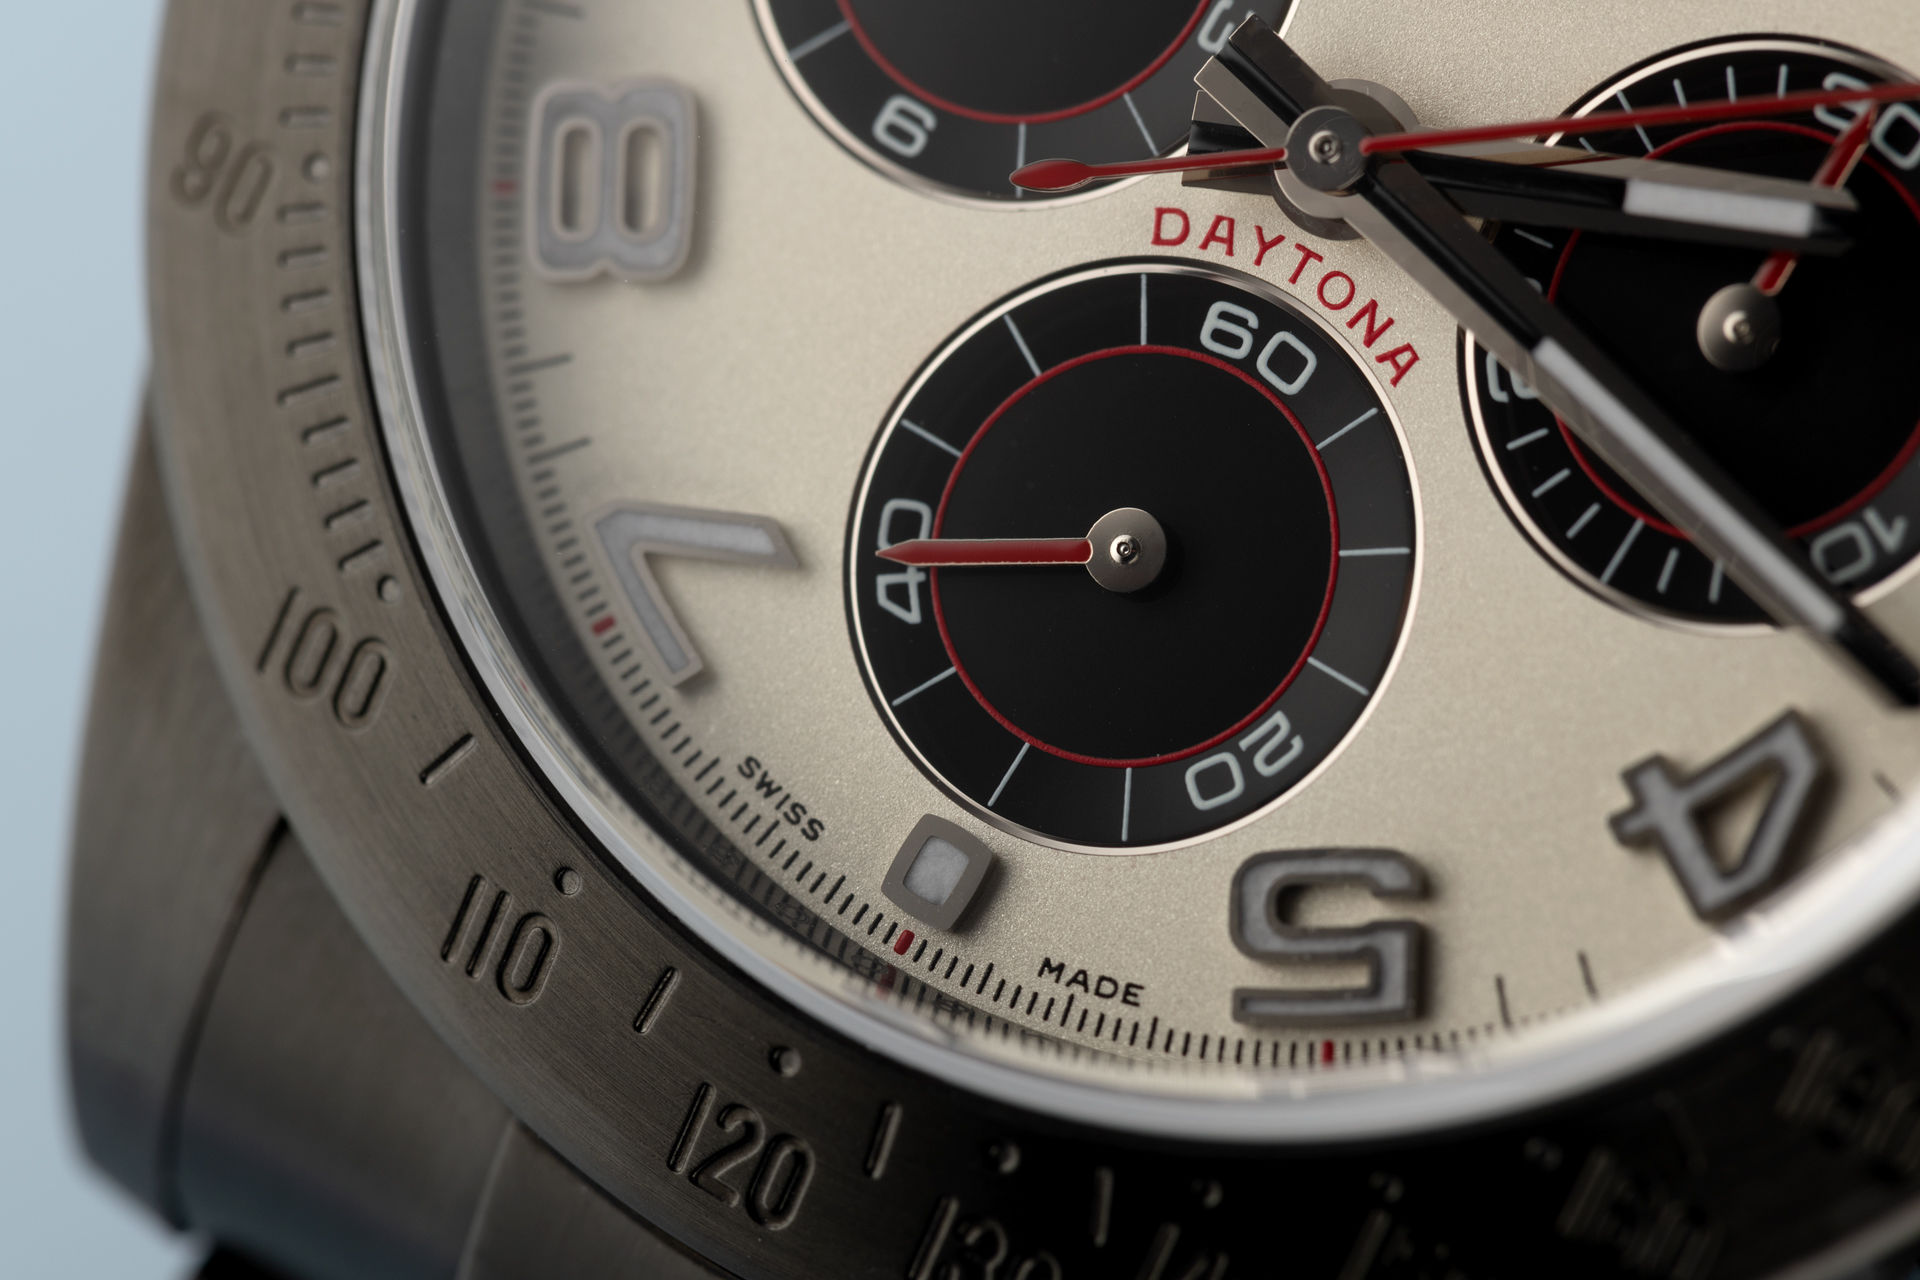 ref 116520 | 'One of 100' Limited Edition | Pro Hunter Cosmograph Daytona